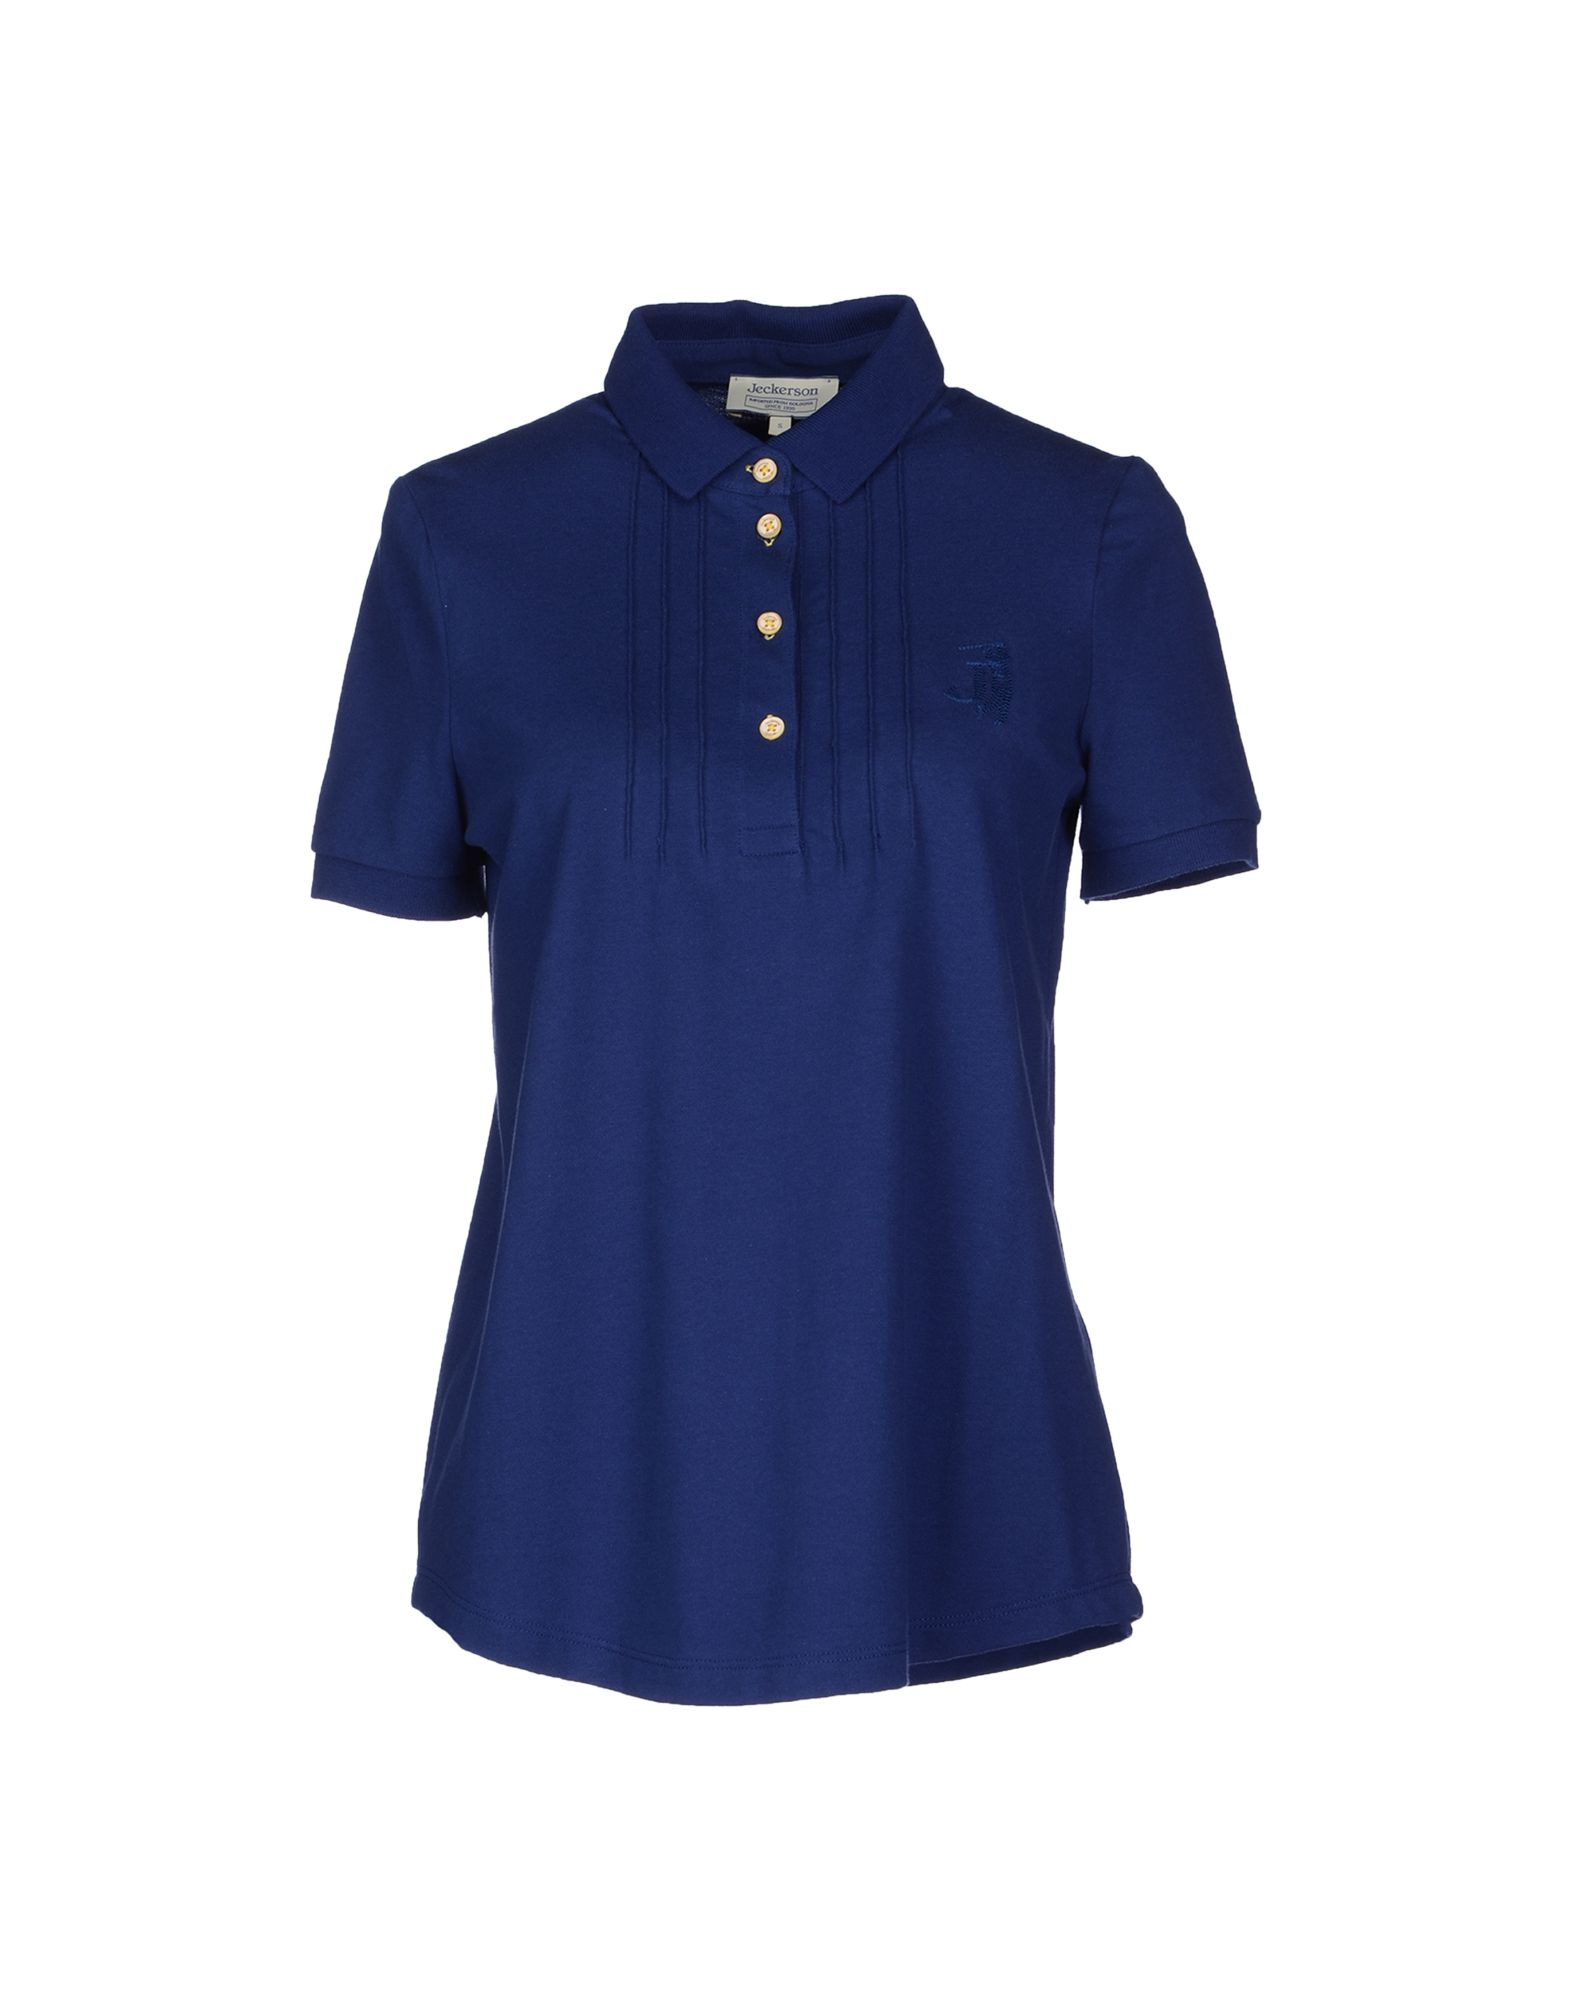 Dark brown and white polo T-shirt template using for fashion cloth design and assessorie for designer to make mock up or blue print in copany. T-shirt design - young man in blank dark blue polo shirt from front and rear isolated.